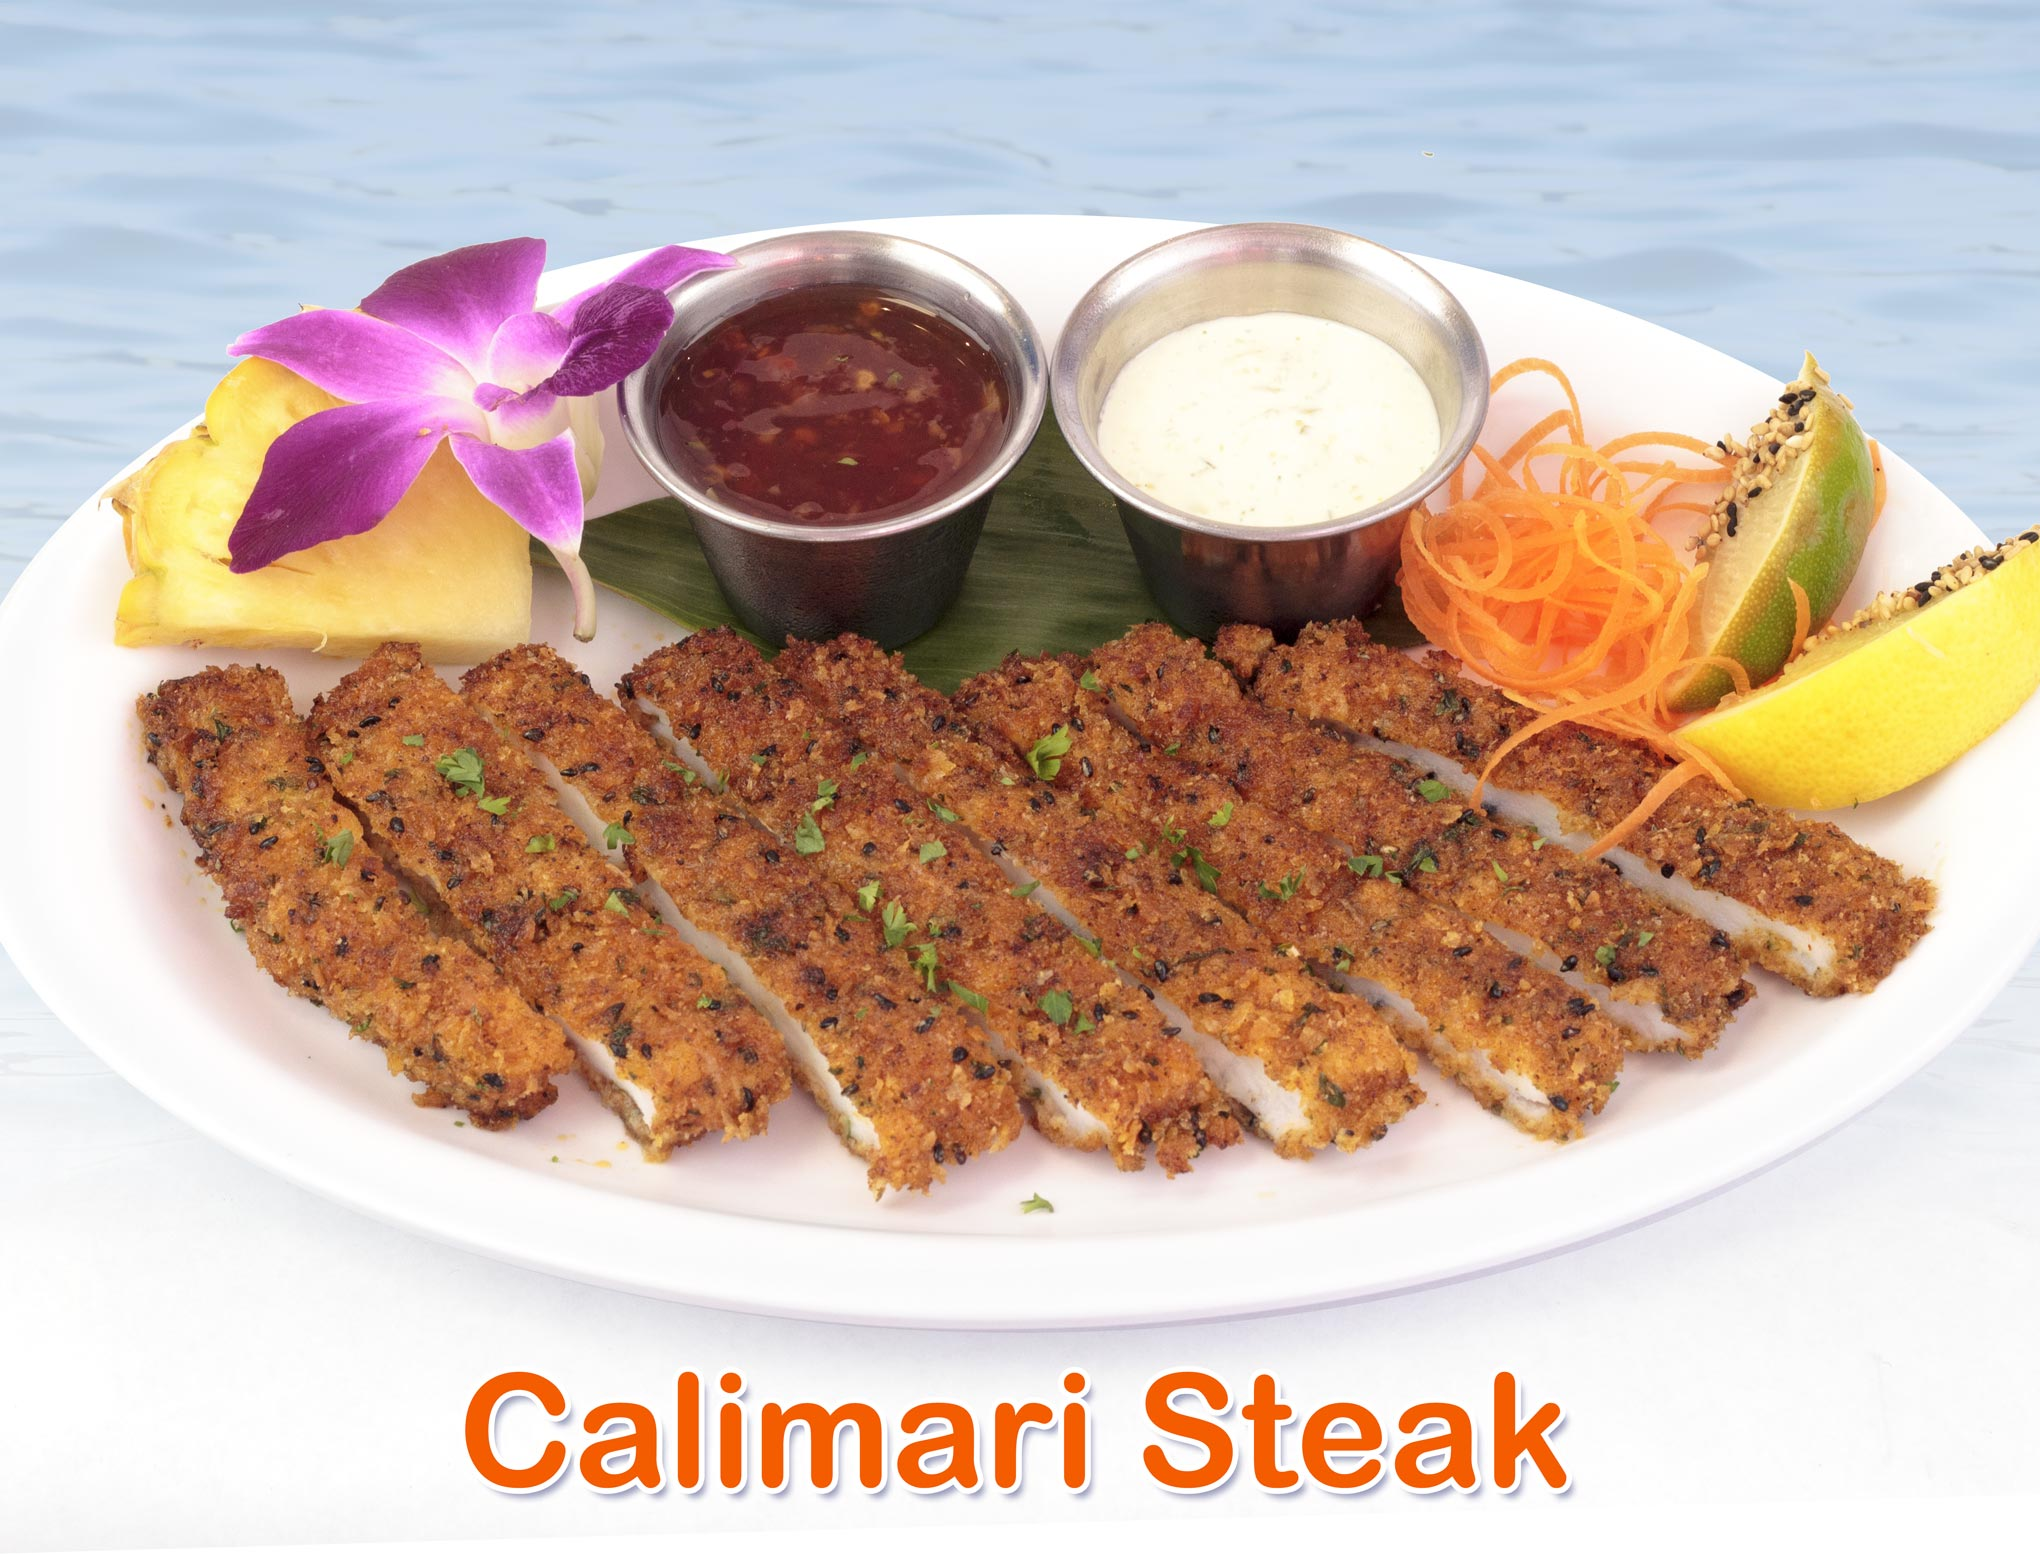 Calamari Steak